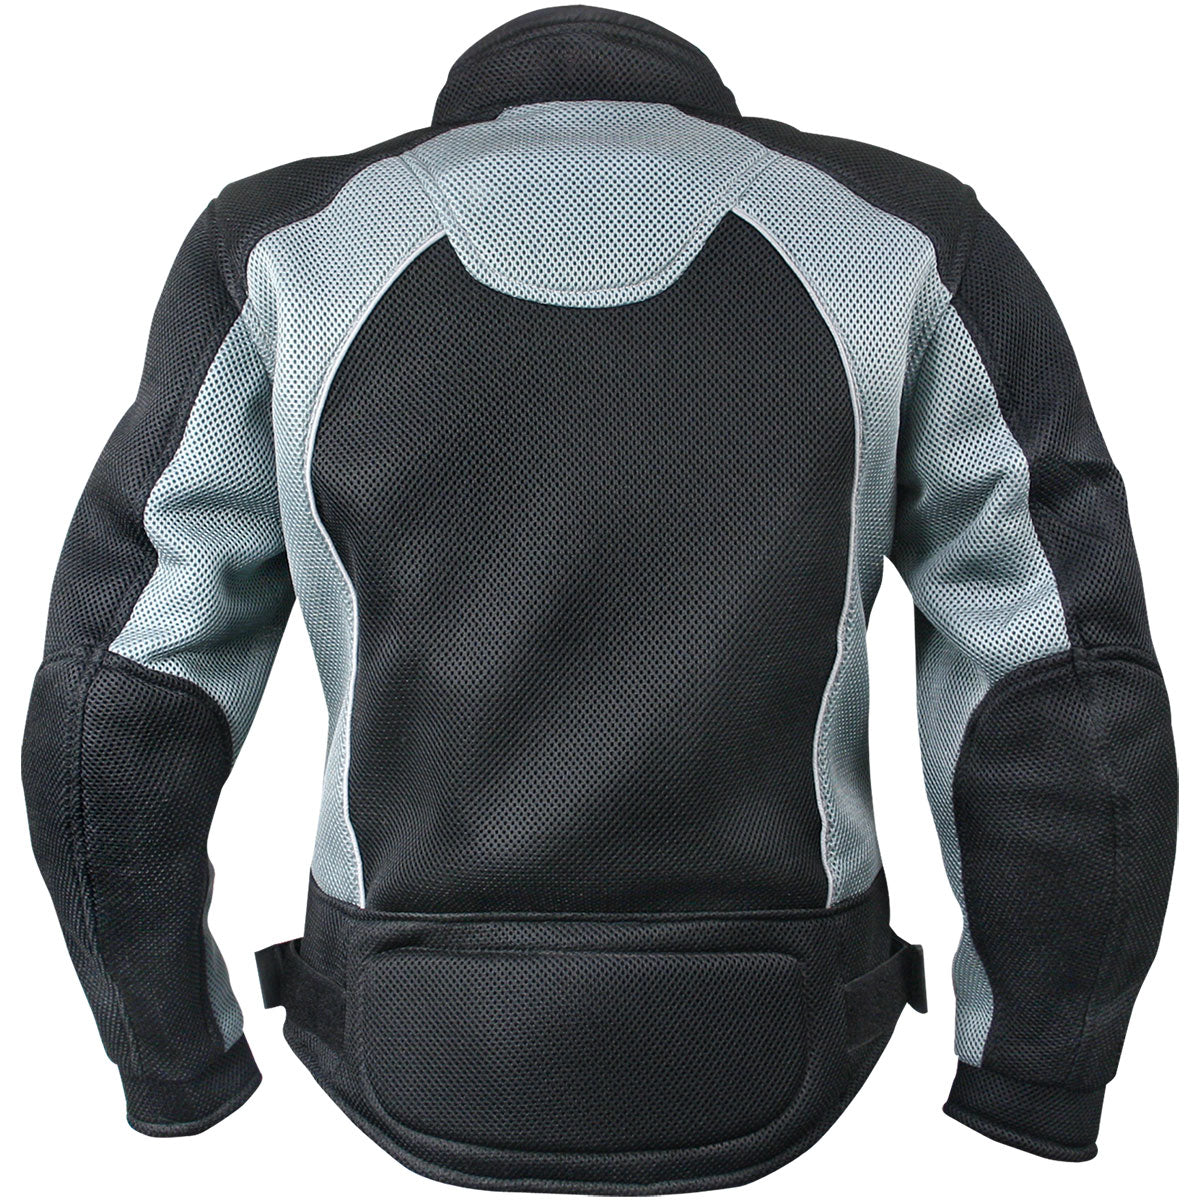 Xelement CF507 Women's 'Guardian' Black and Grey Mesh Jacket with